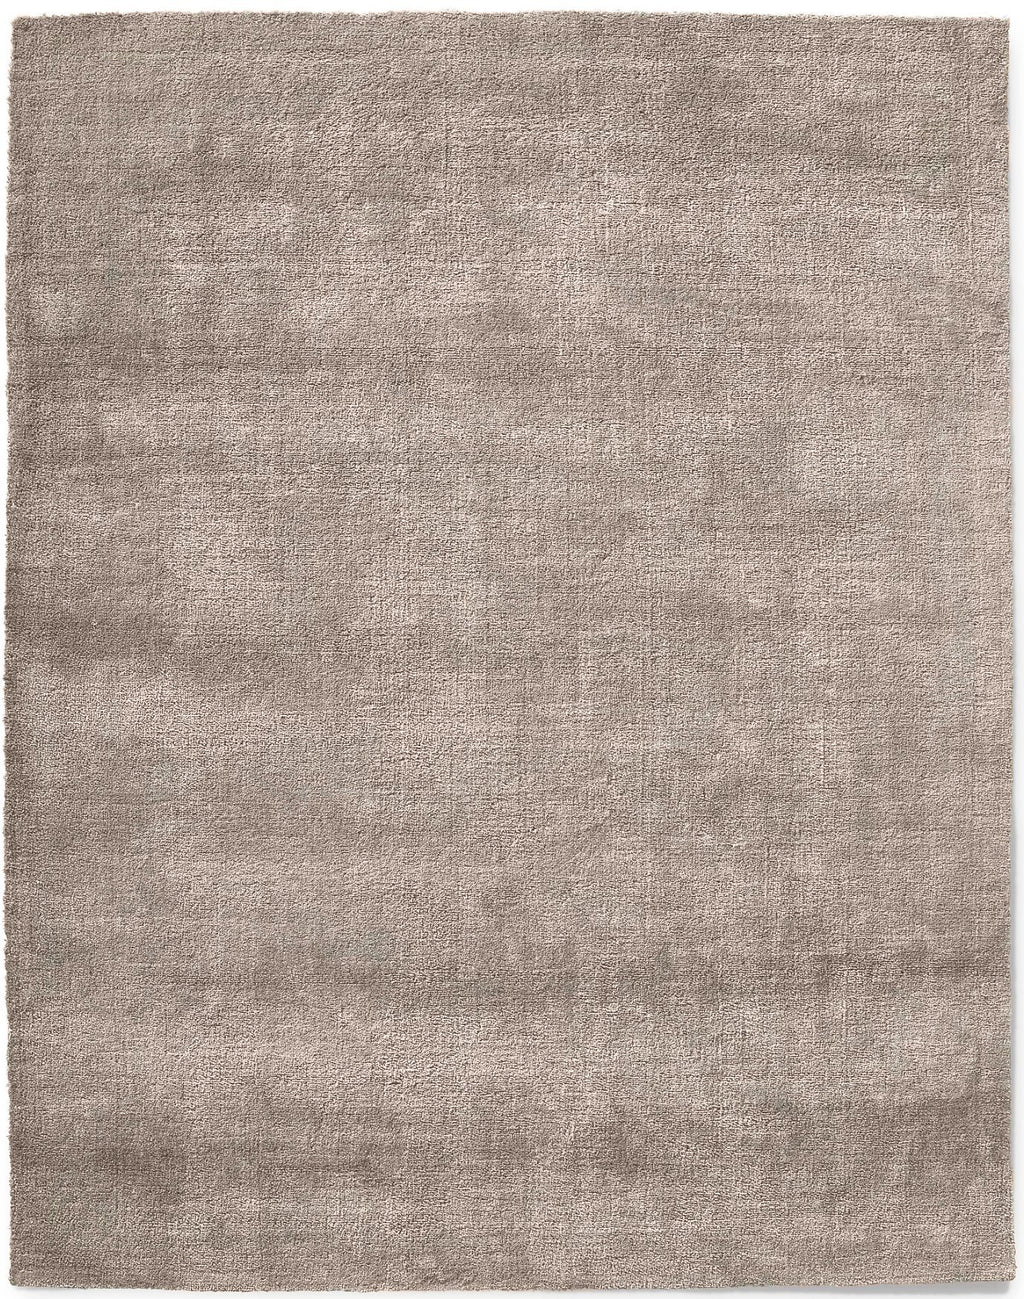 Cashmere Natural Wool Moroccan Rug Modern Shop Tapis 6 X 9